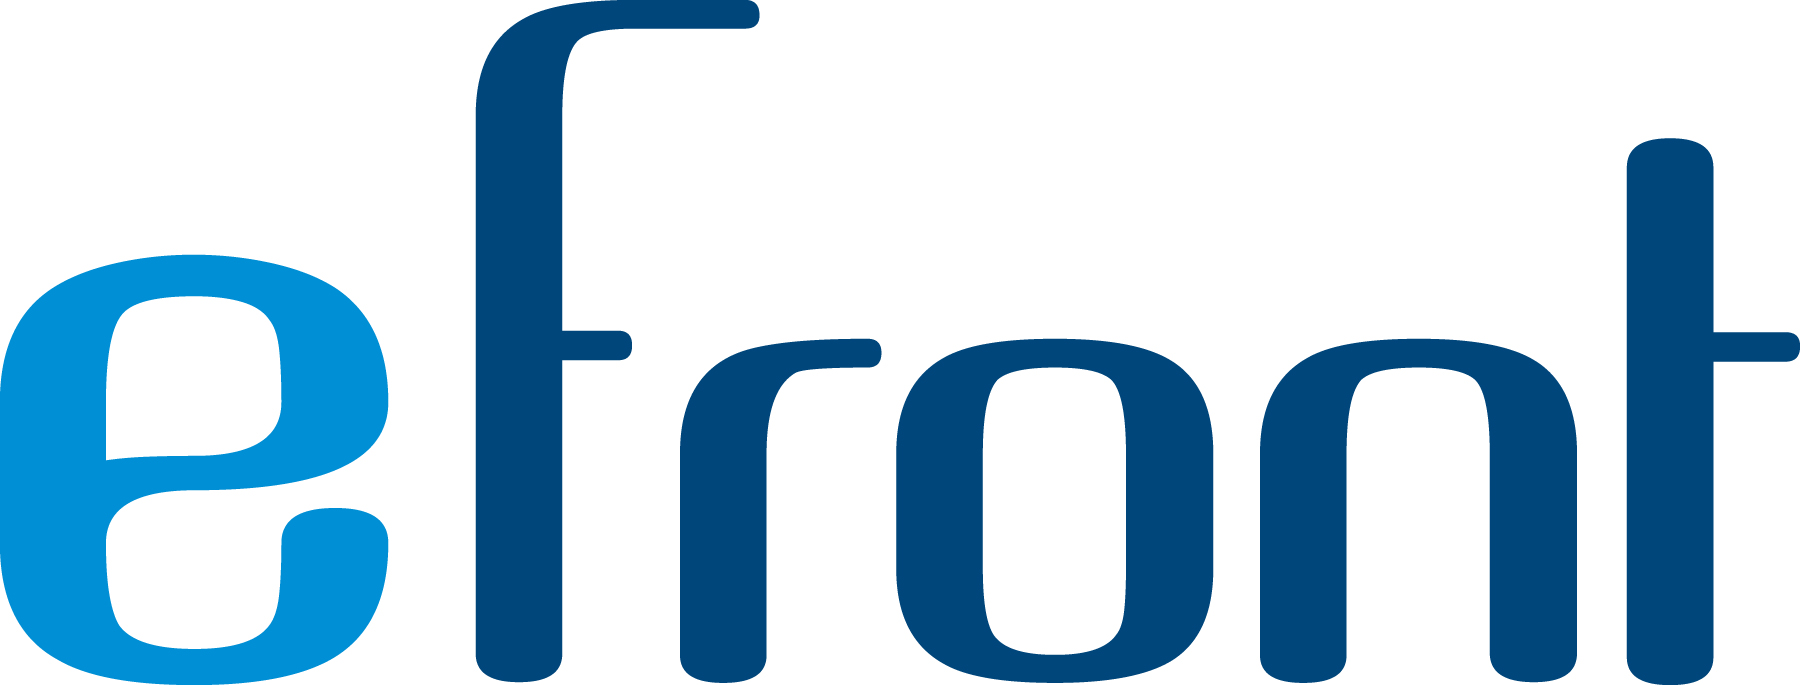 Efront Net C Developer Belgrade